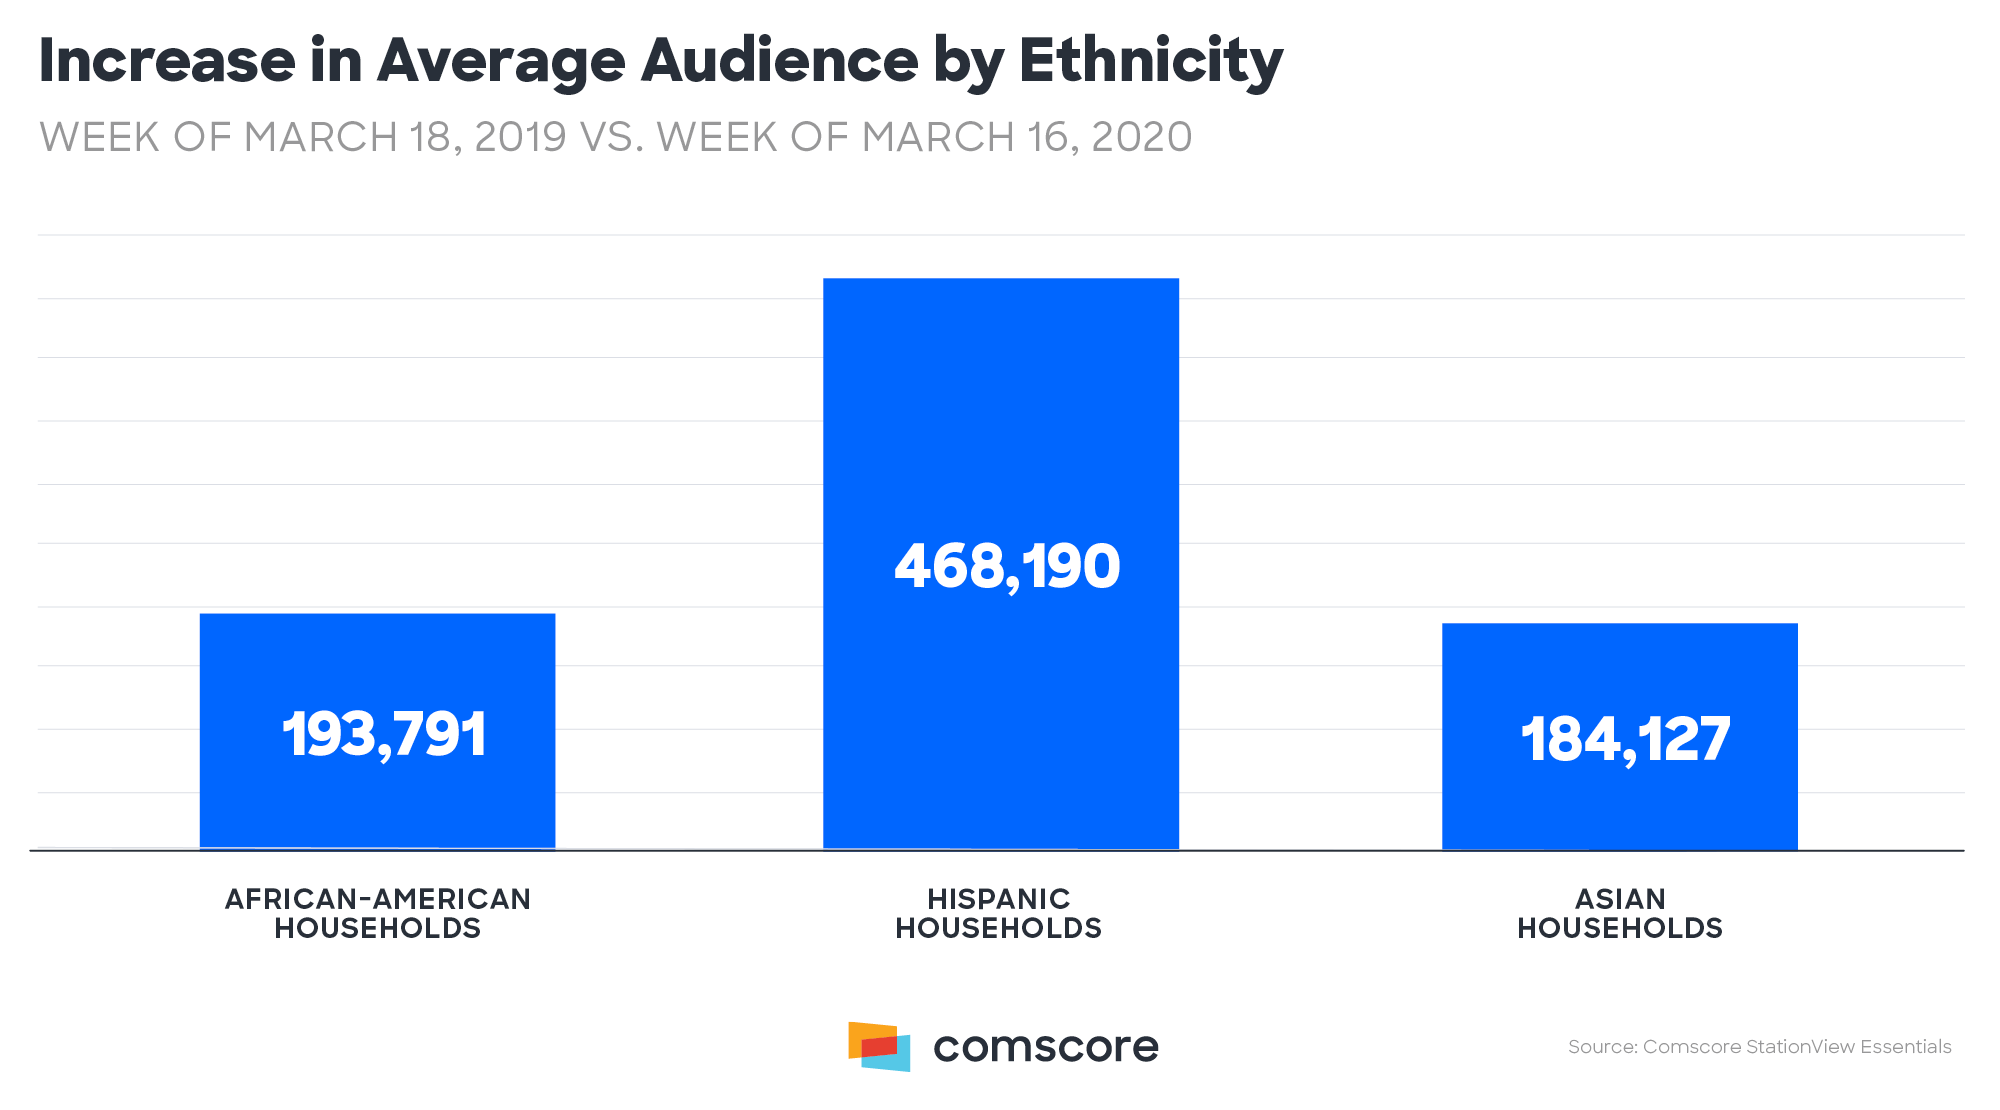 Coronavirus - TV viewing audience increase by Ethnicity 3